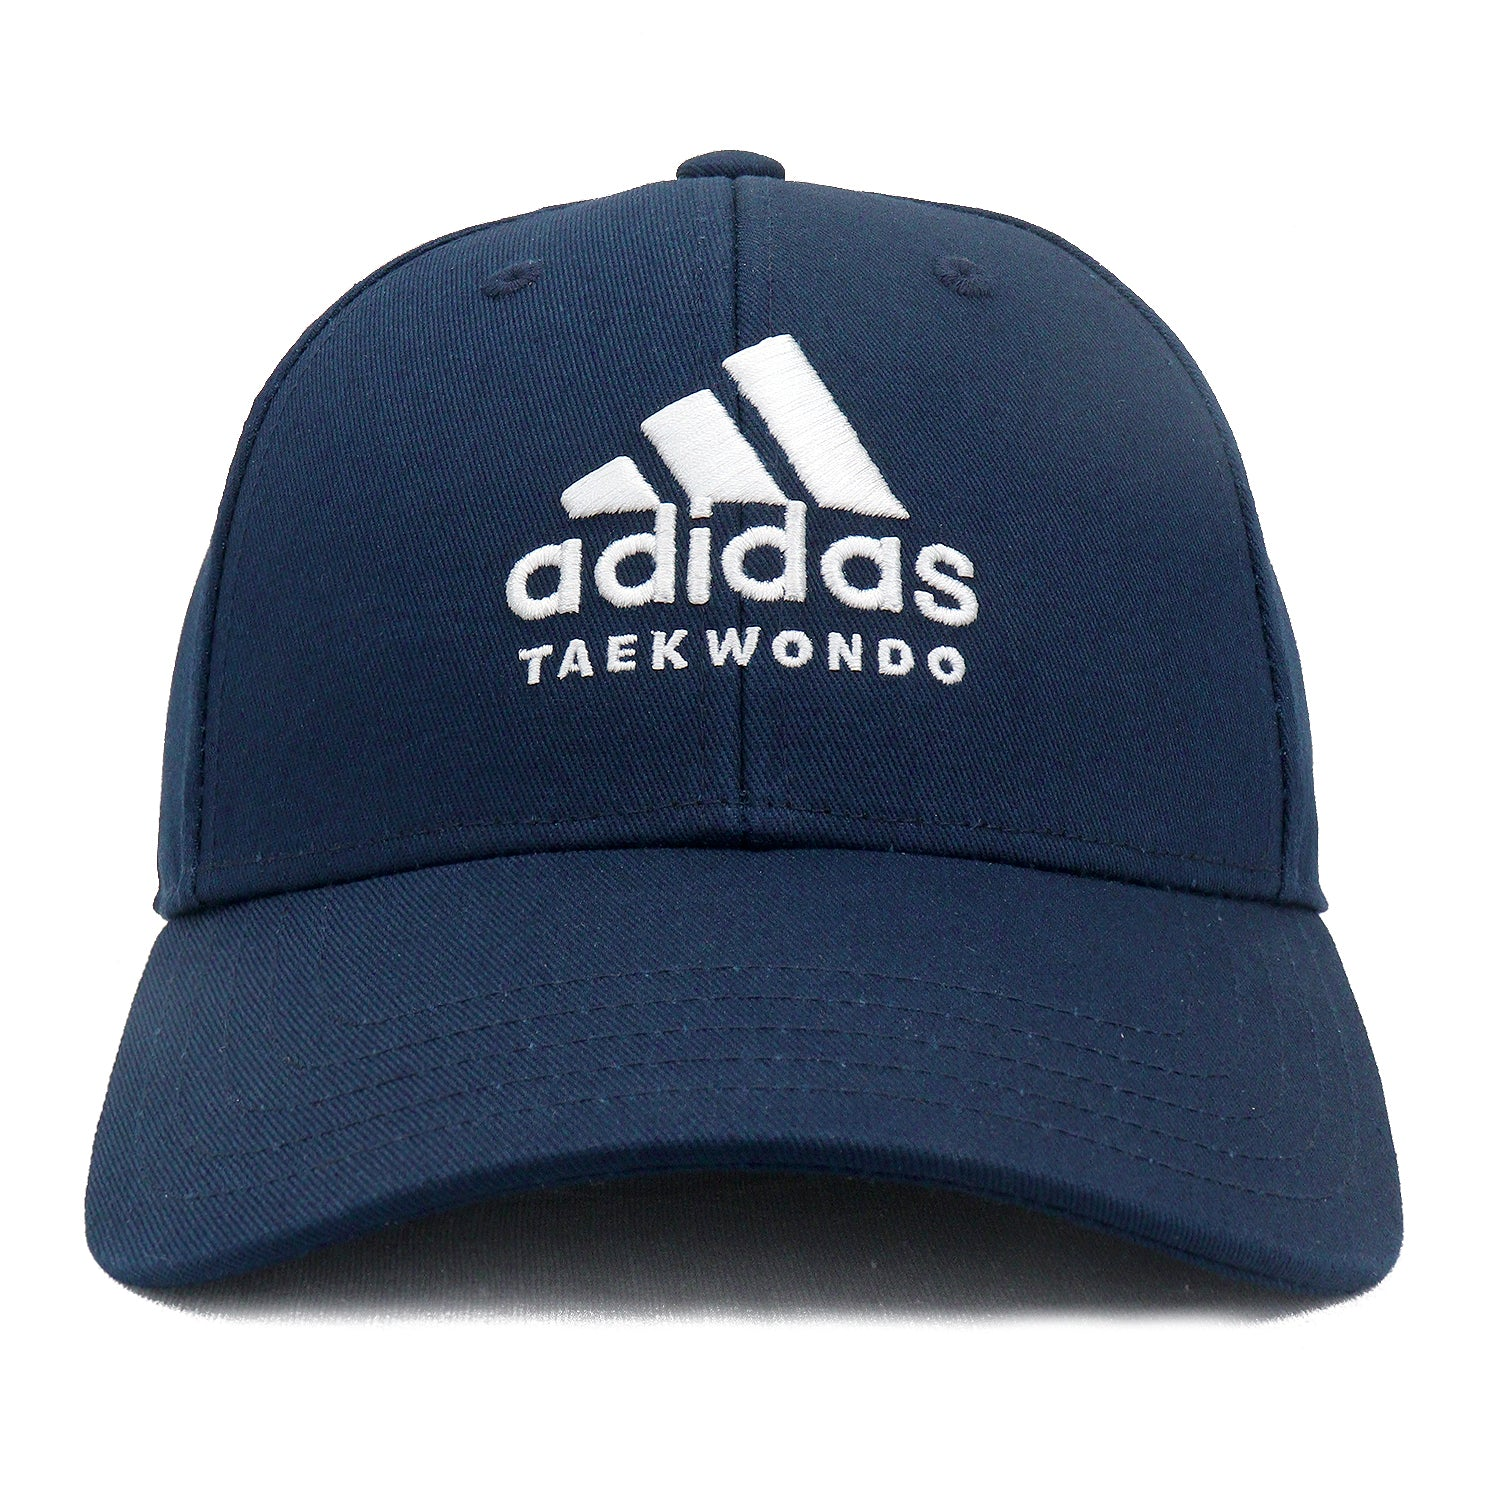 adidas Taekwondo Embroidered Structured Pre-curved Brim Cap